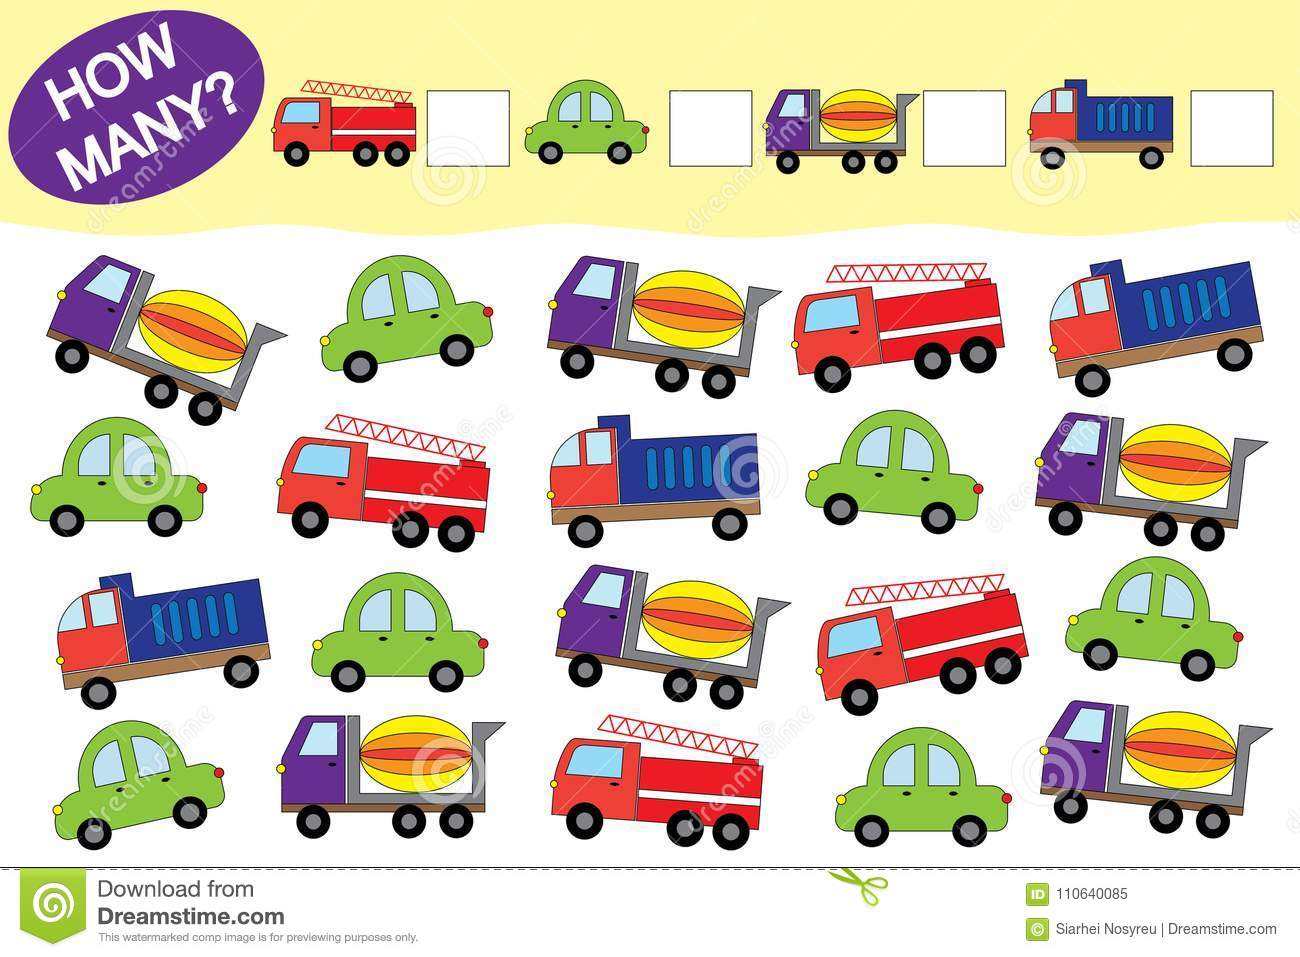 How Many Objects Of Transport  Educational Game For Children